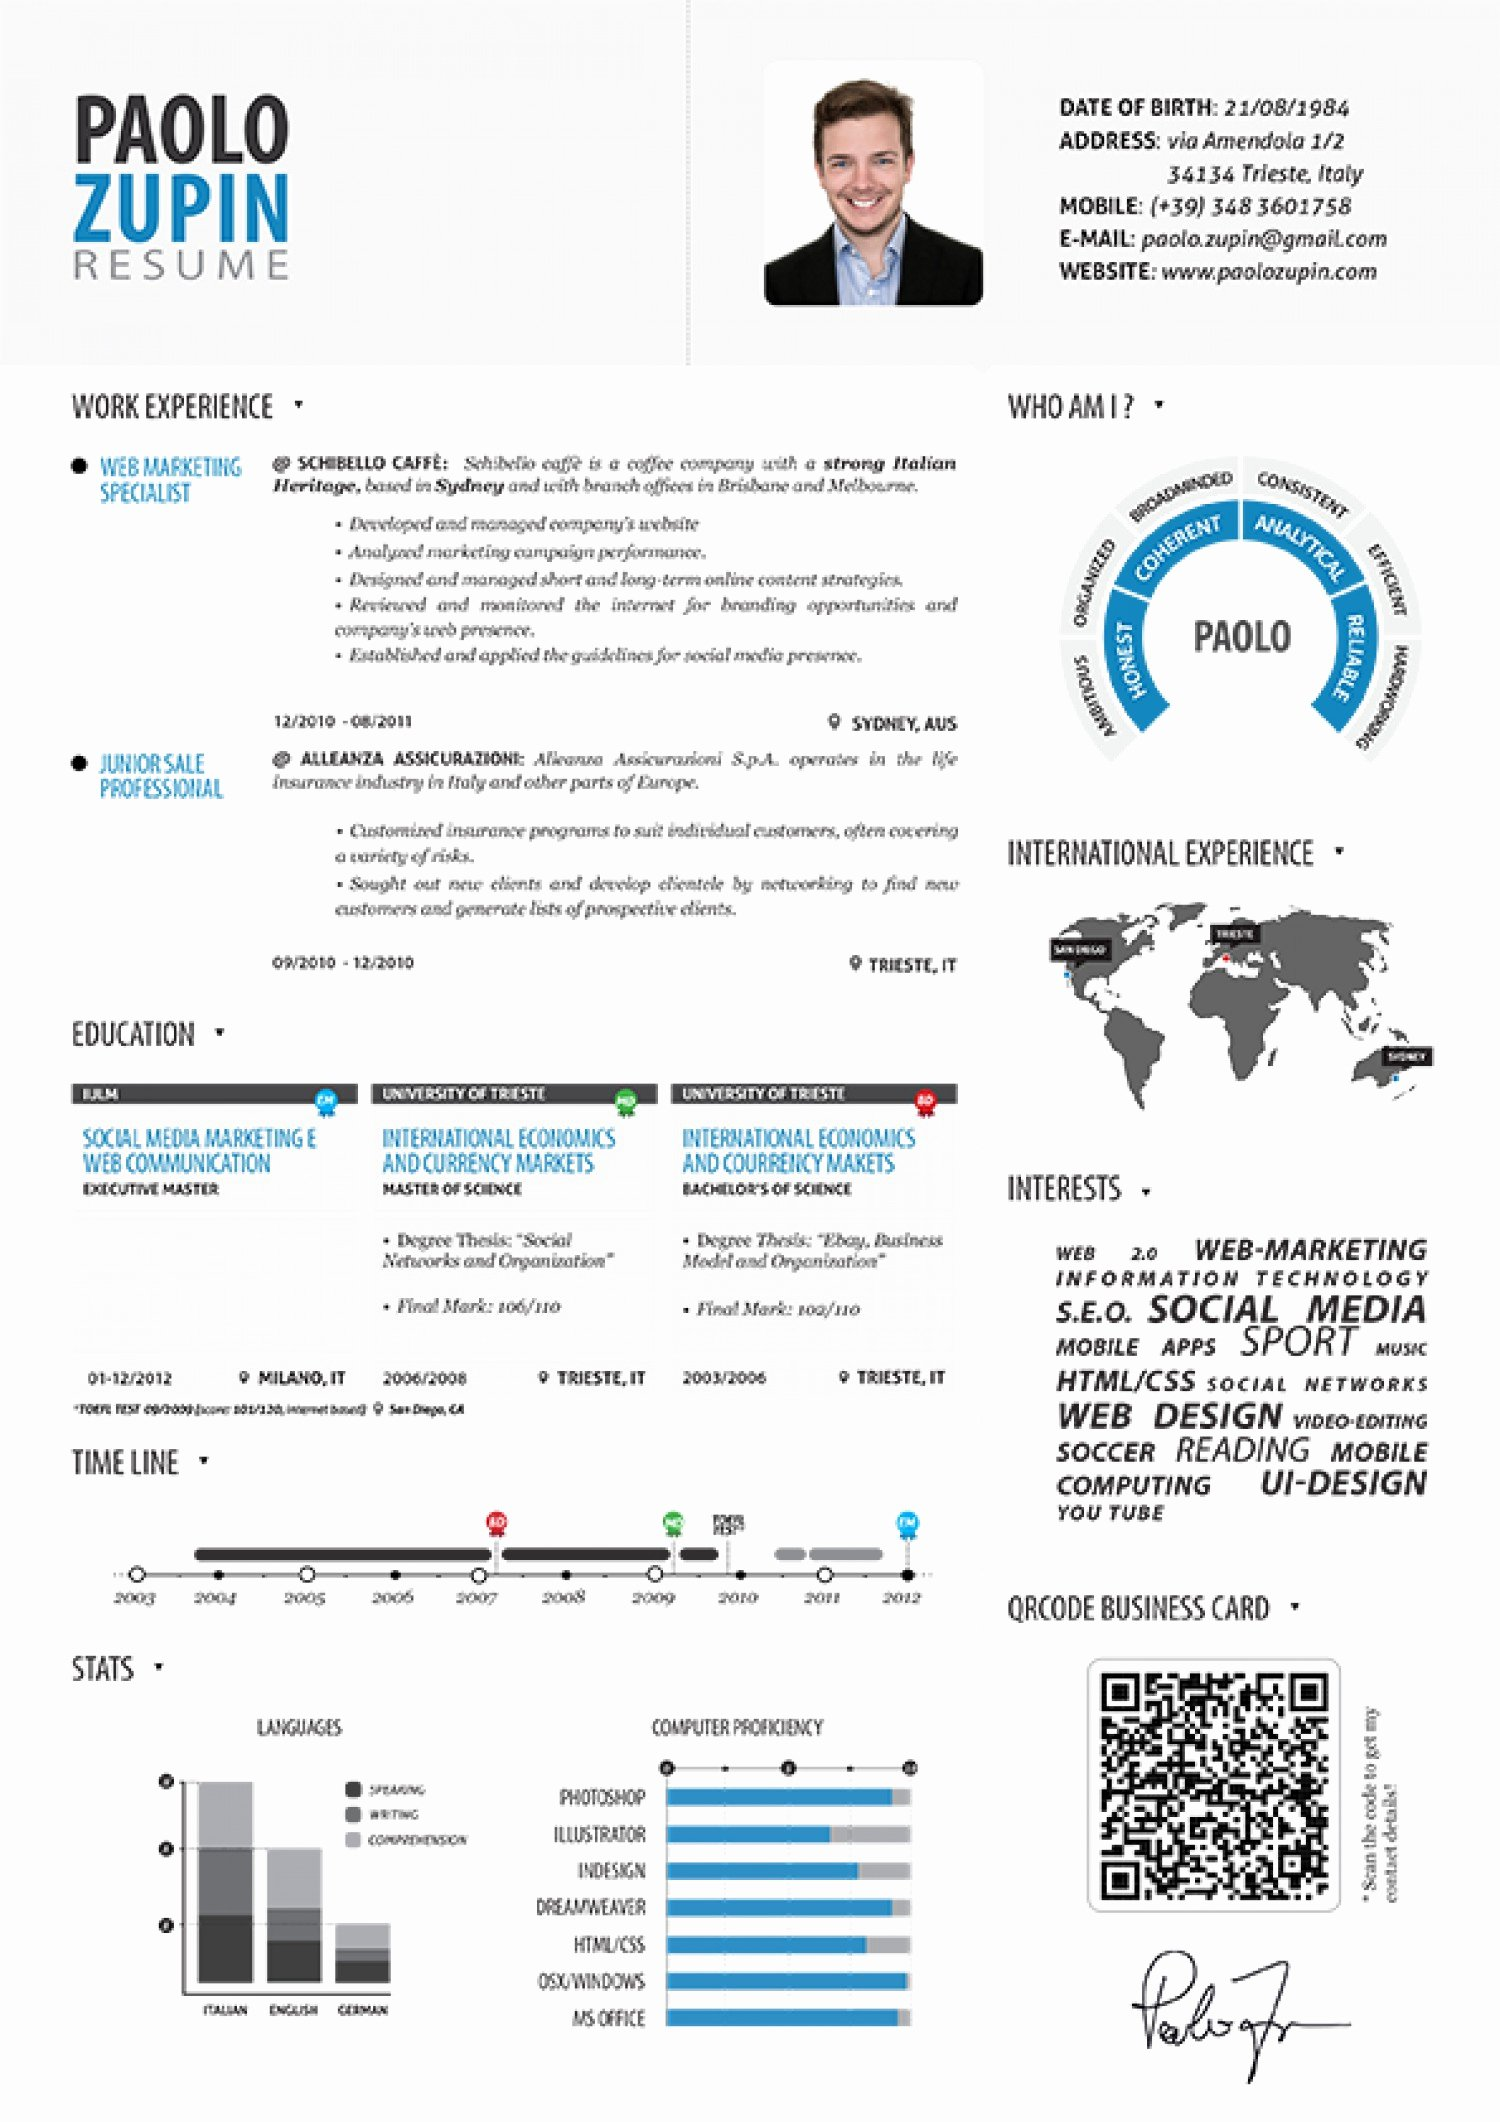 Infographic Resume Template Word Elegant Paolo Zupin Infographic Resume